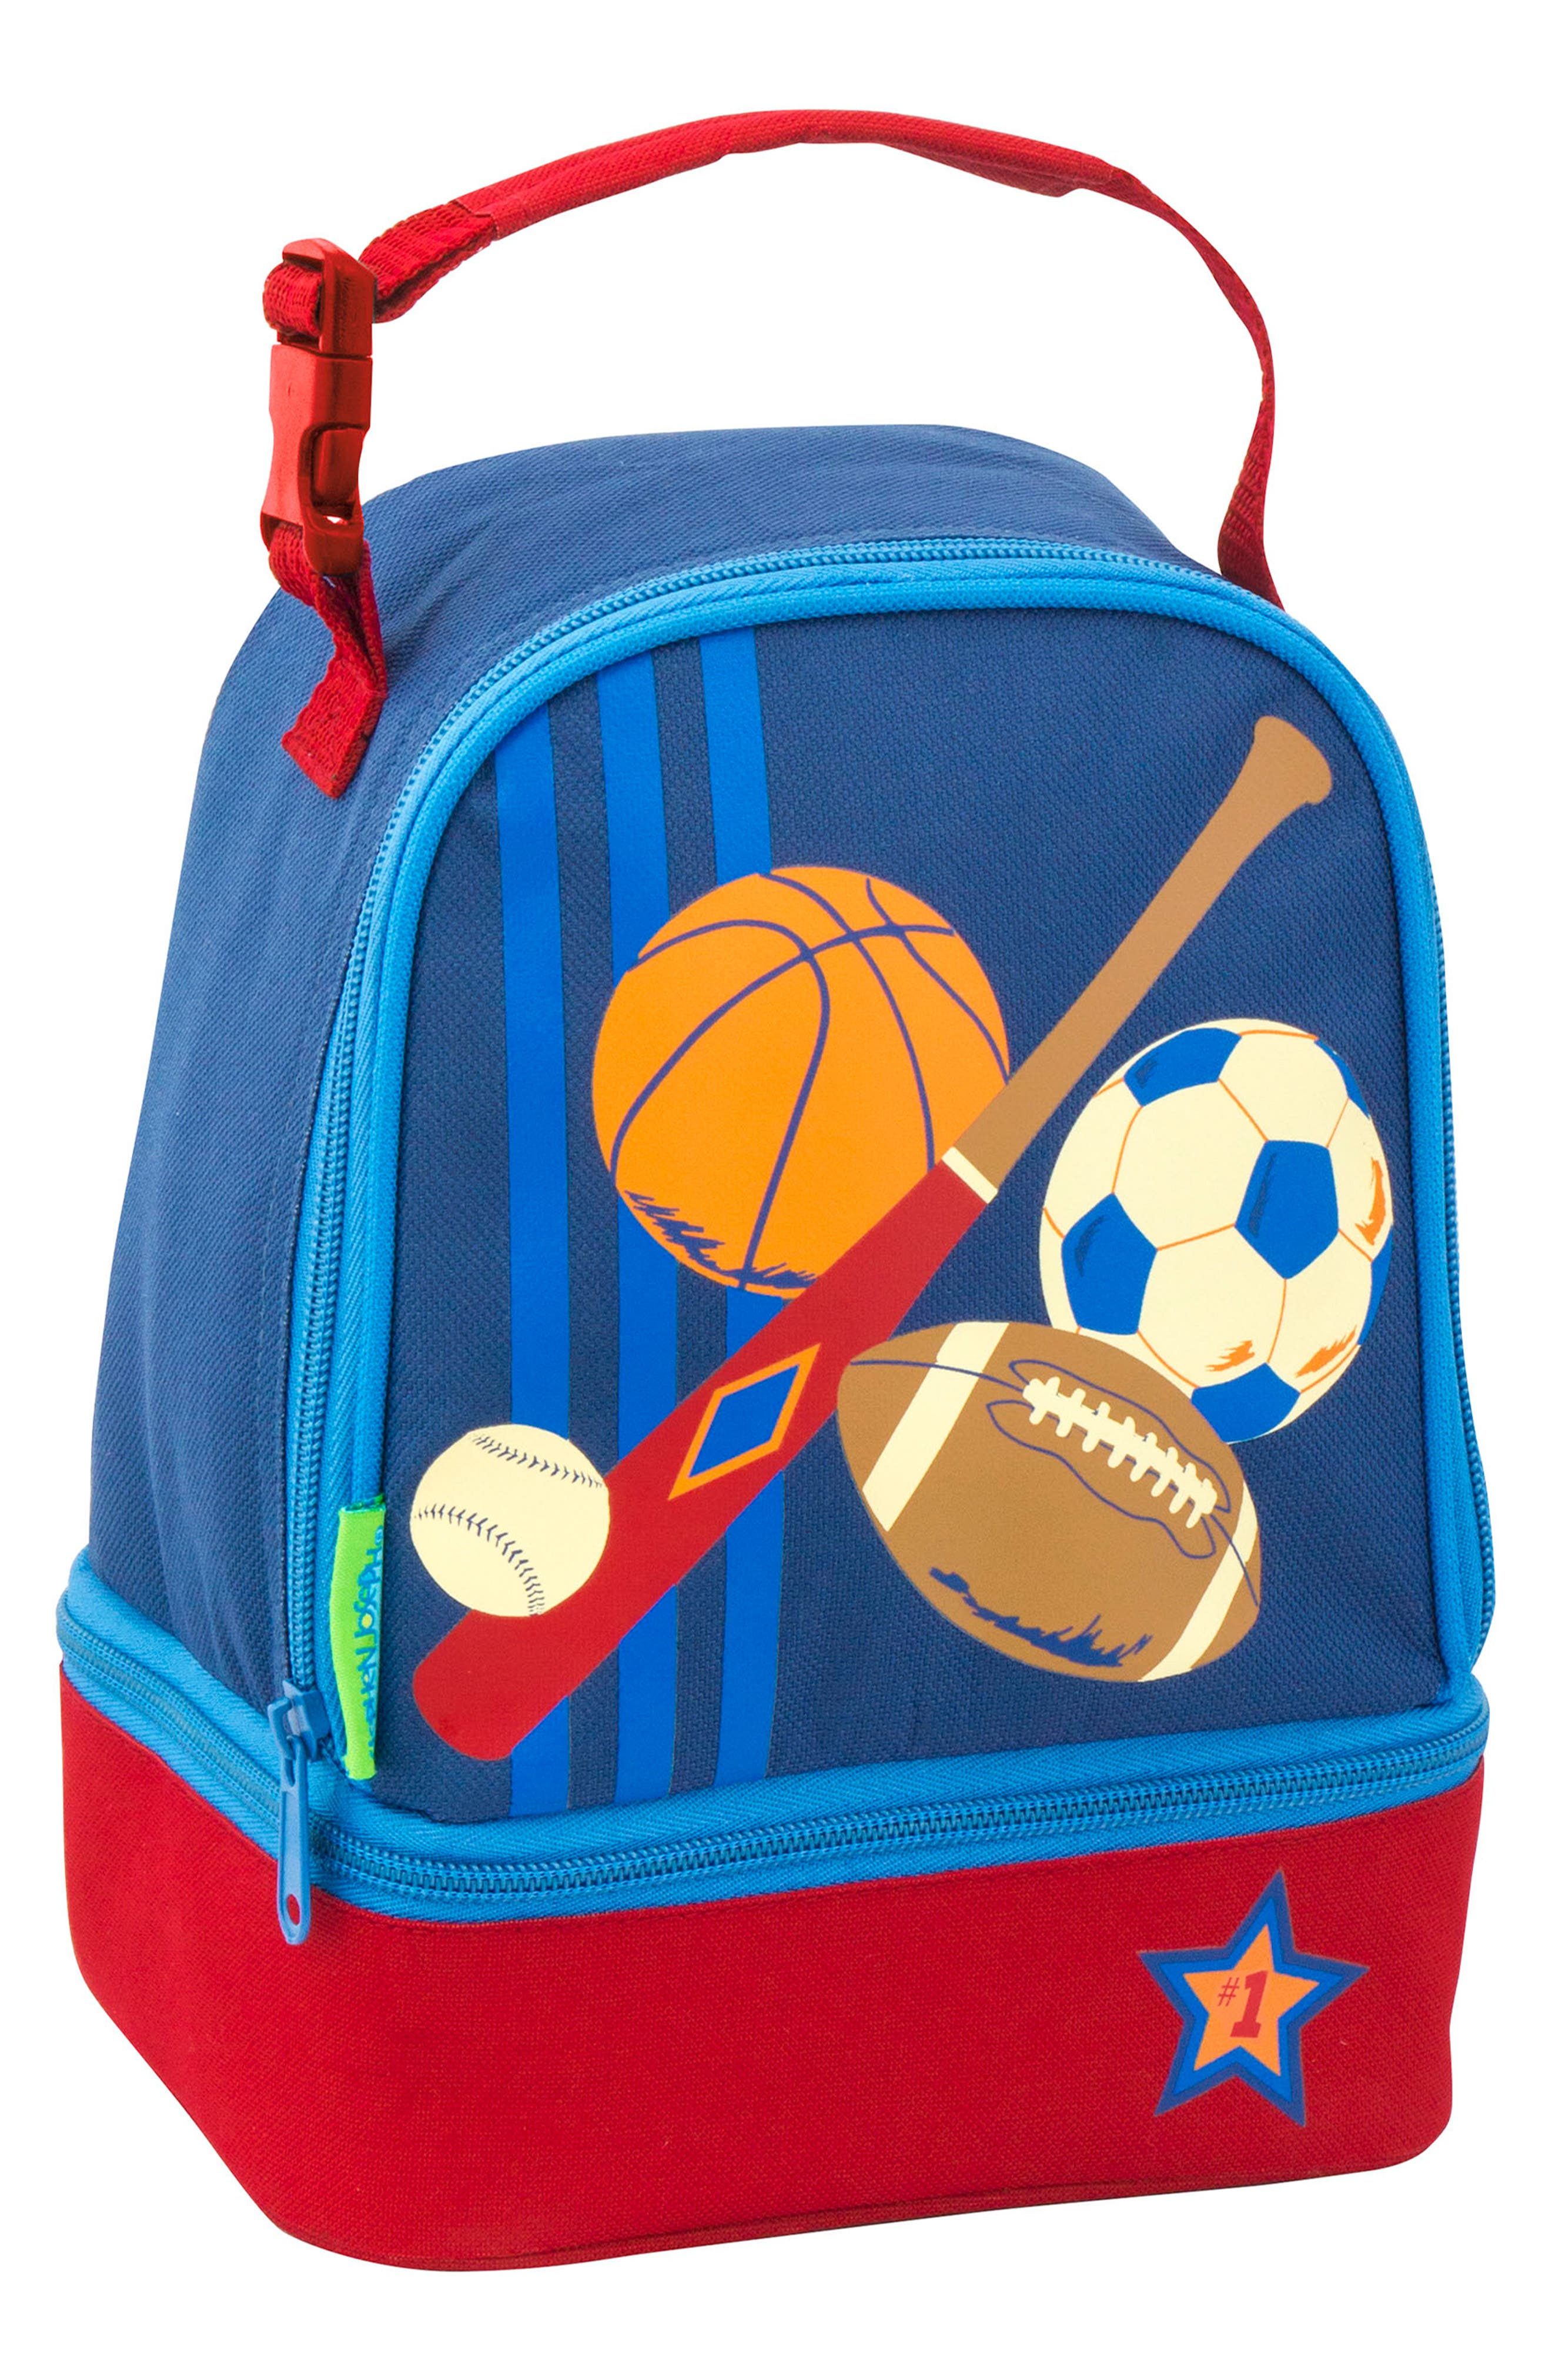 Sports Sidekick Backpack & Lunch Pal,                             Alternate thumbnail 7, color,                             SPORTS